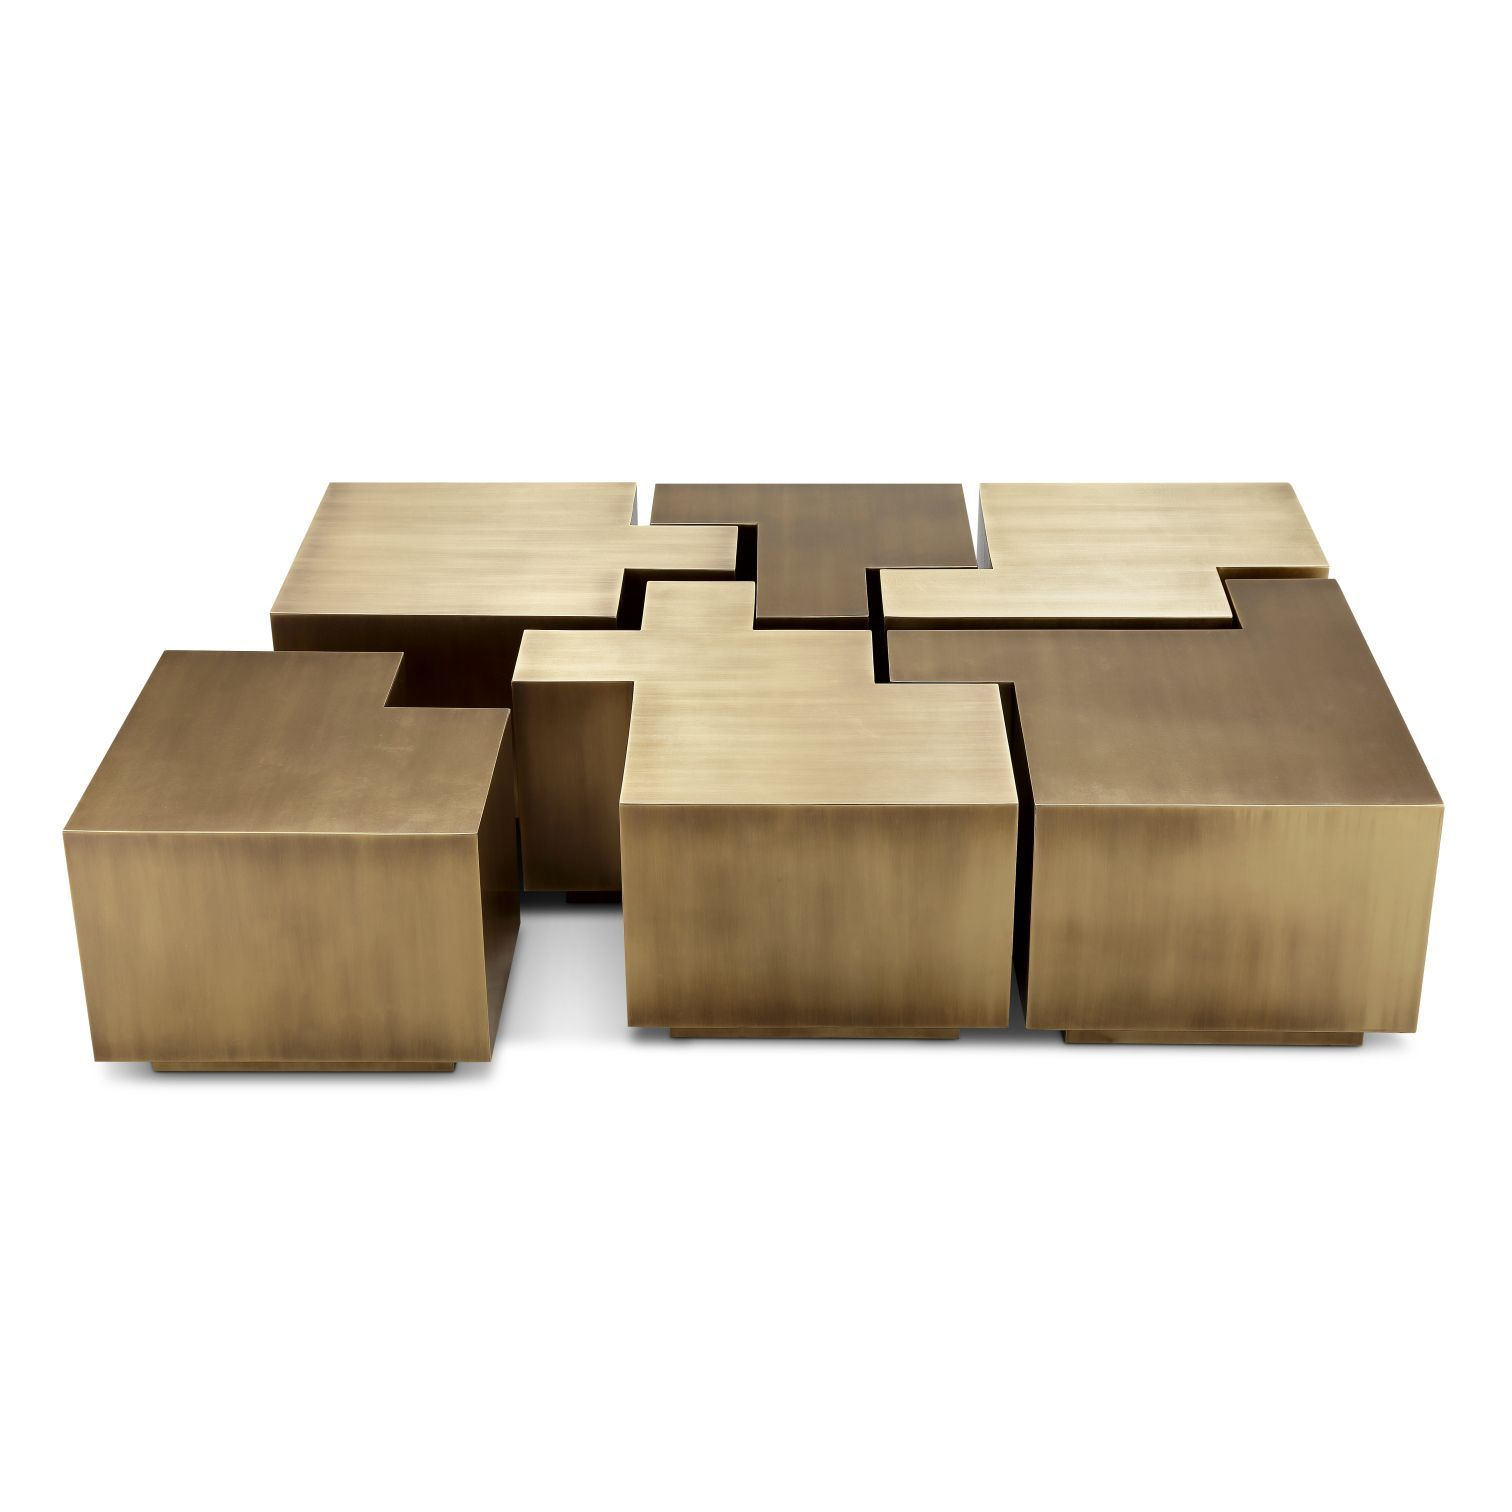 22 Modern Coffee Tables Designs Interesting Best Unique And Classy Coffee Table Cool Coffee Tables Stone Coffee Table